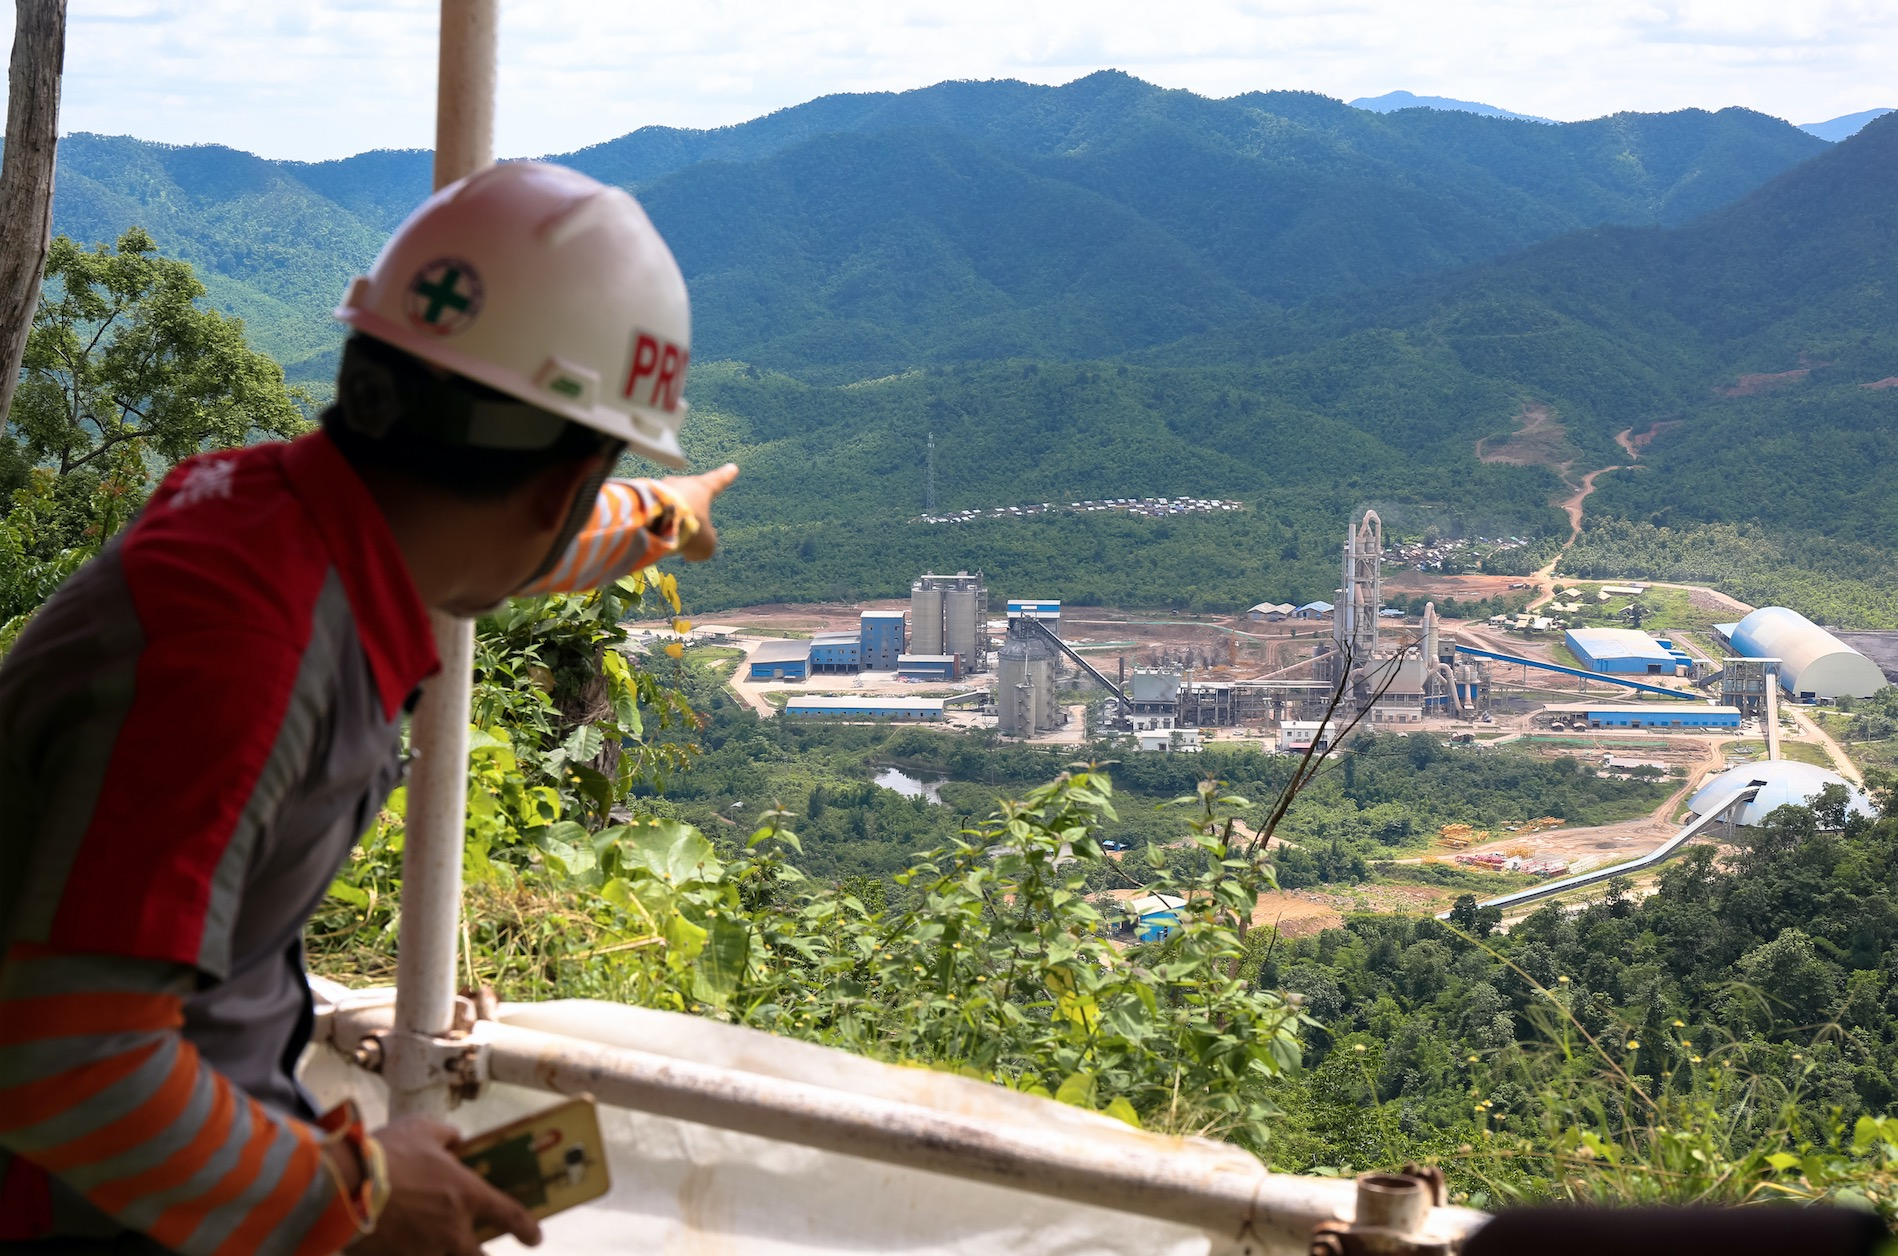 Shwe Taung's cement plant, as seen from their property's viewpoint overlook. July 2017